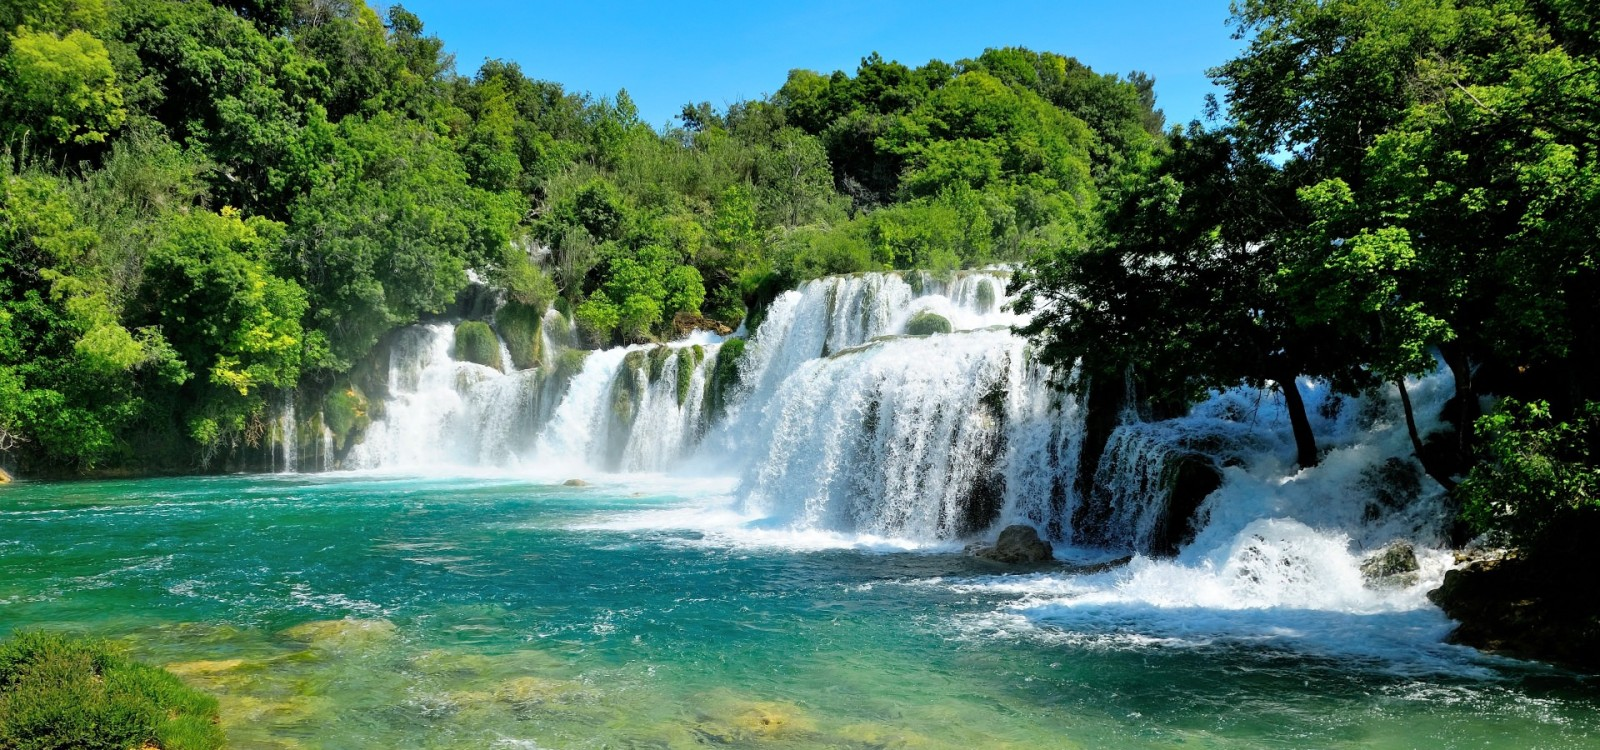 The magic of Krka National Park